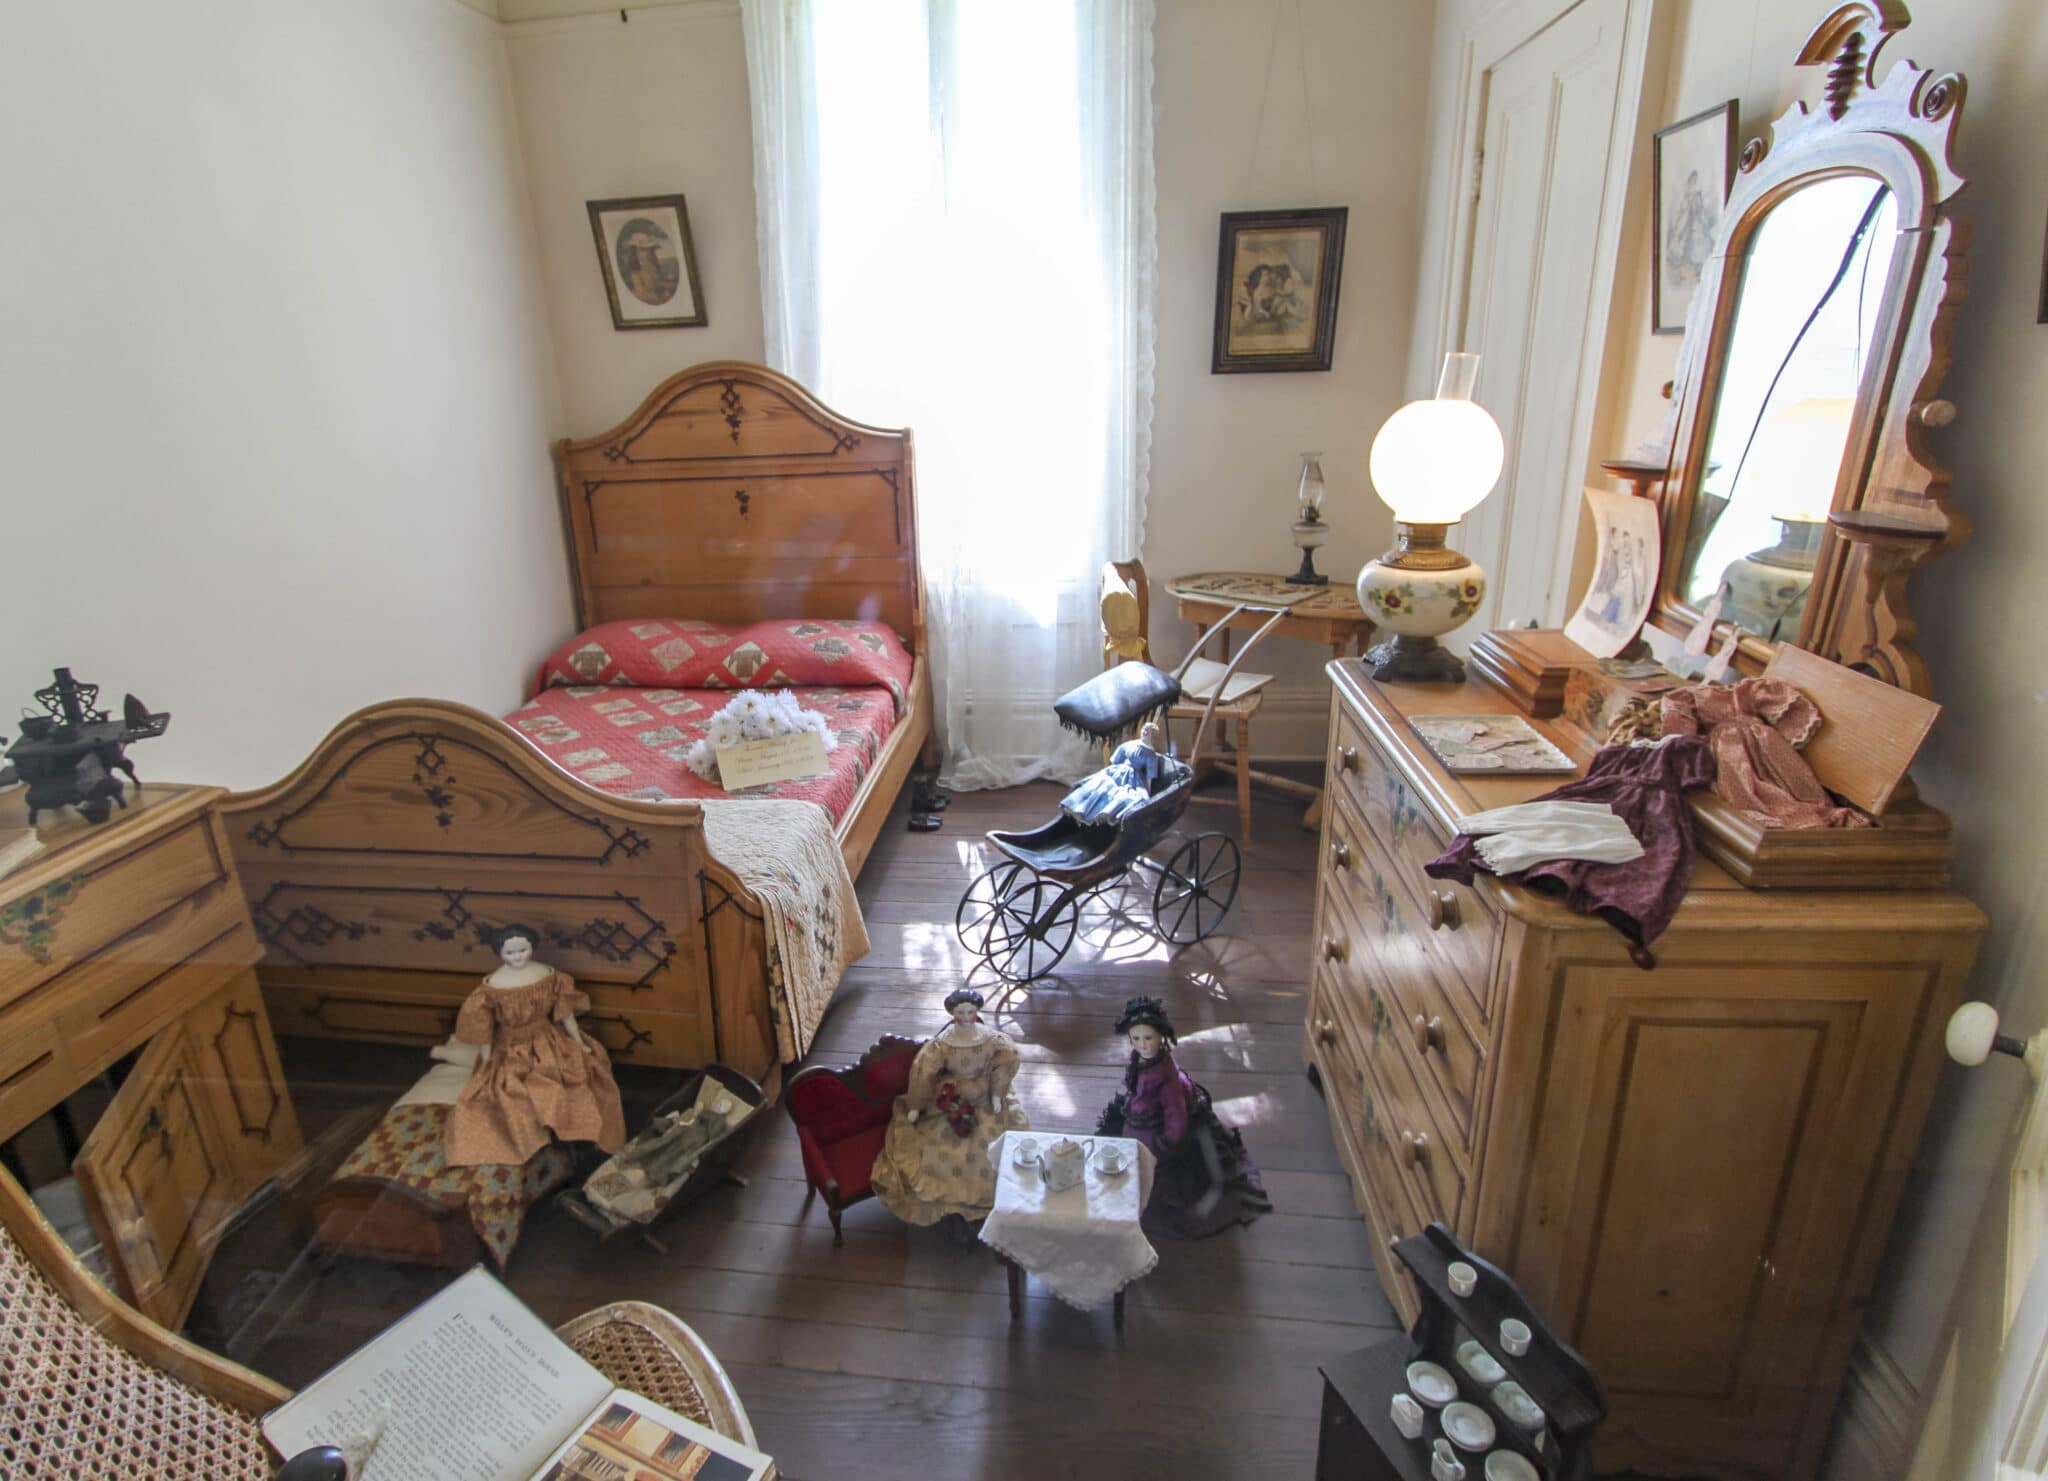 A girls' bedroom inside the Whaley House, a haunted house and museum in Old Town San Diego.